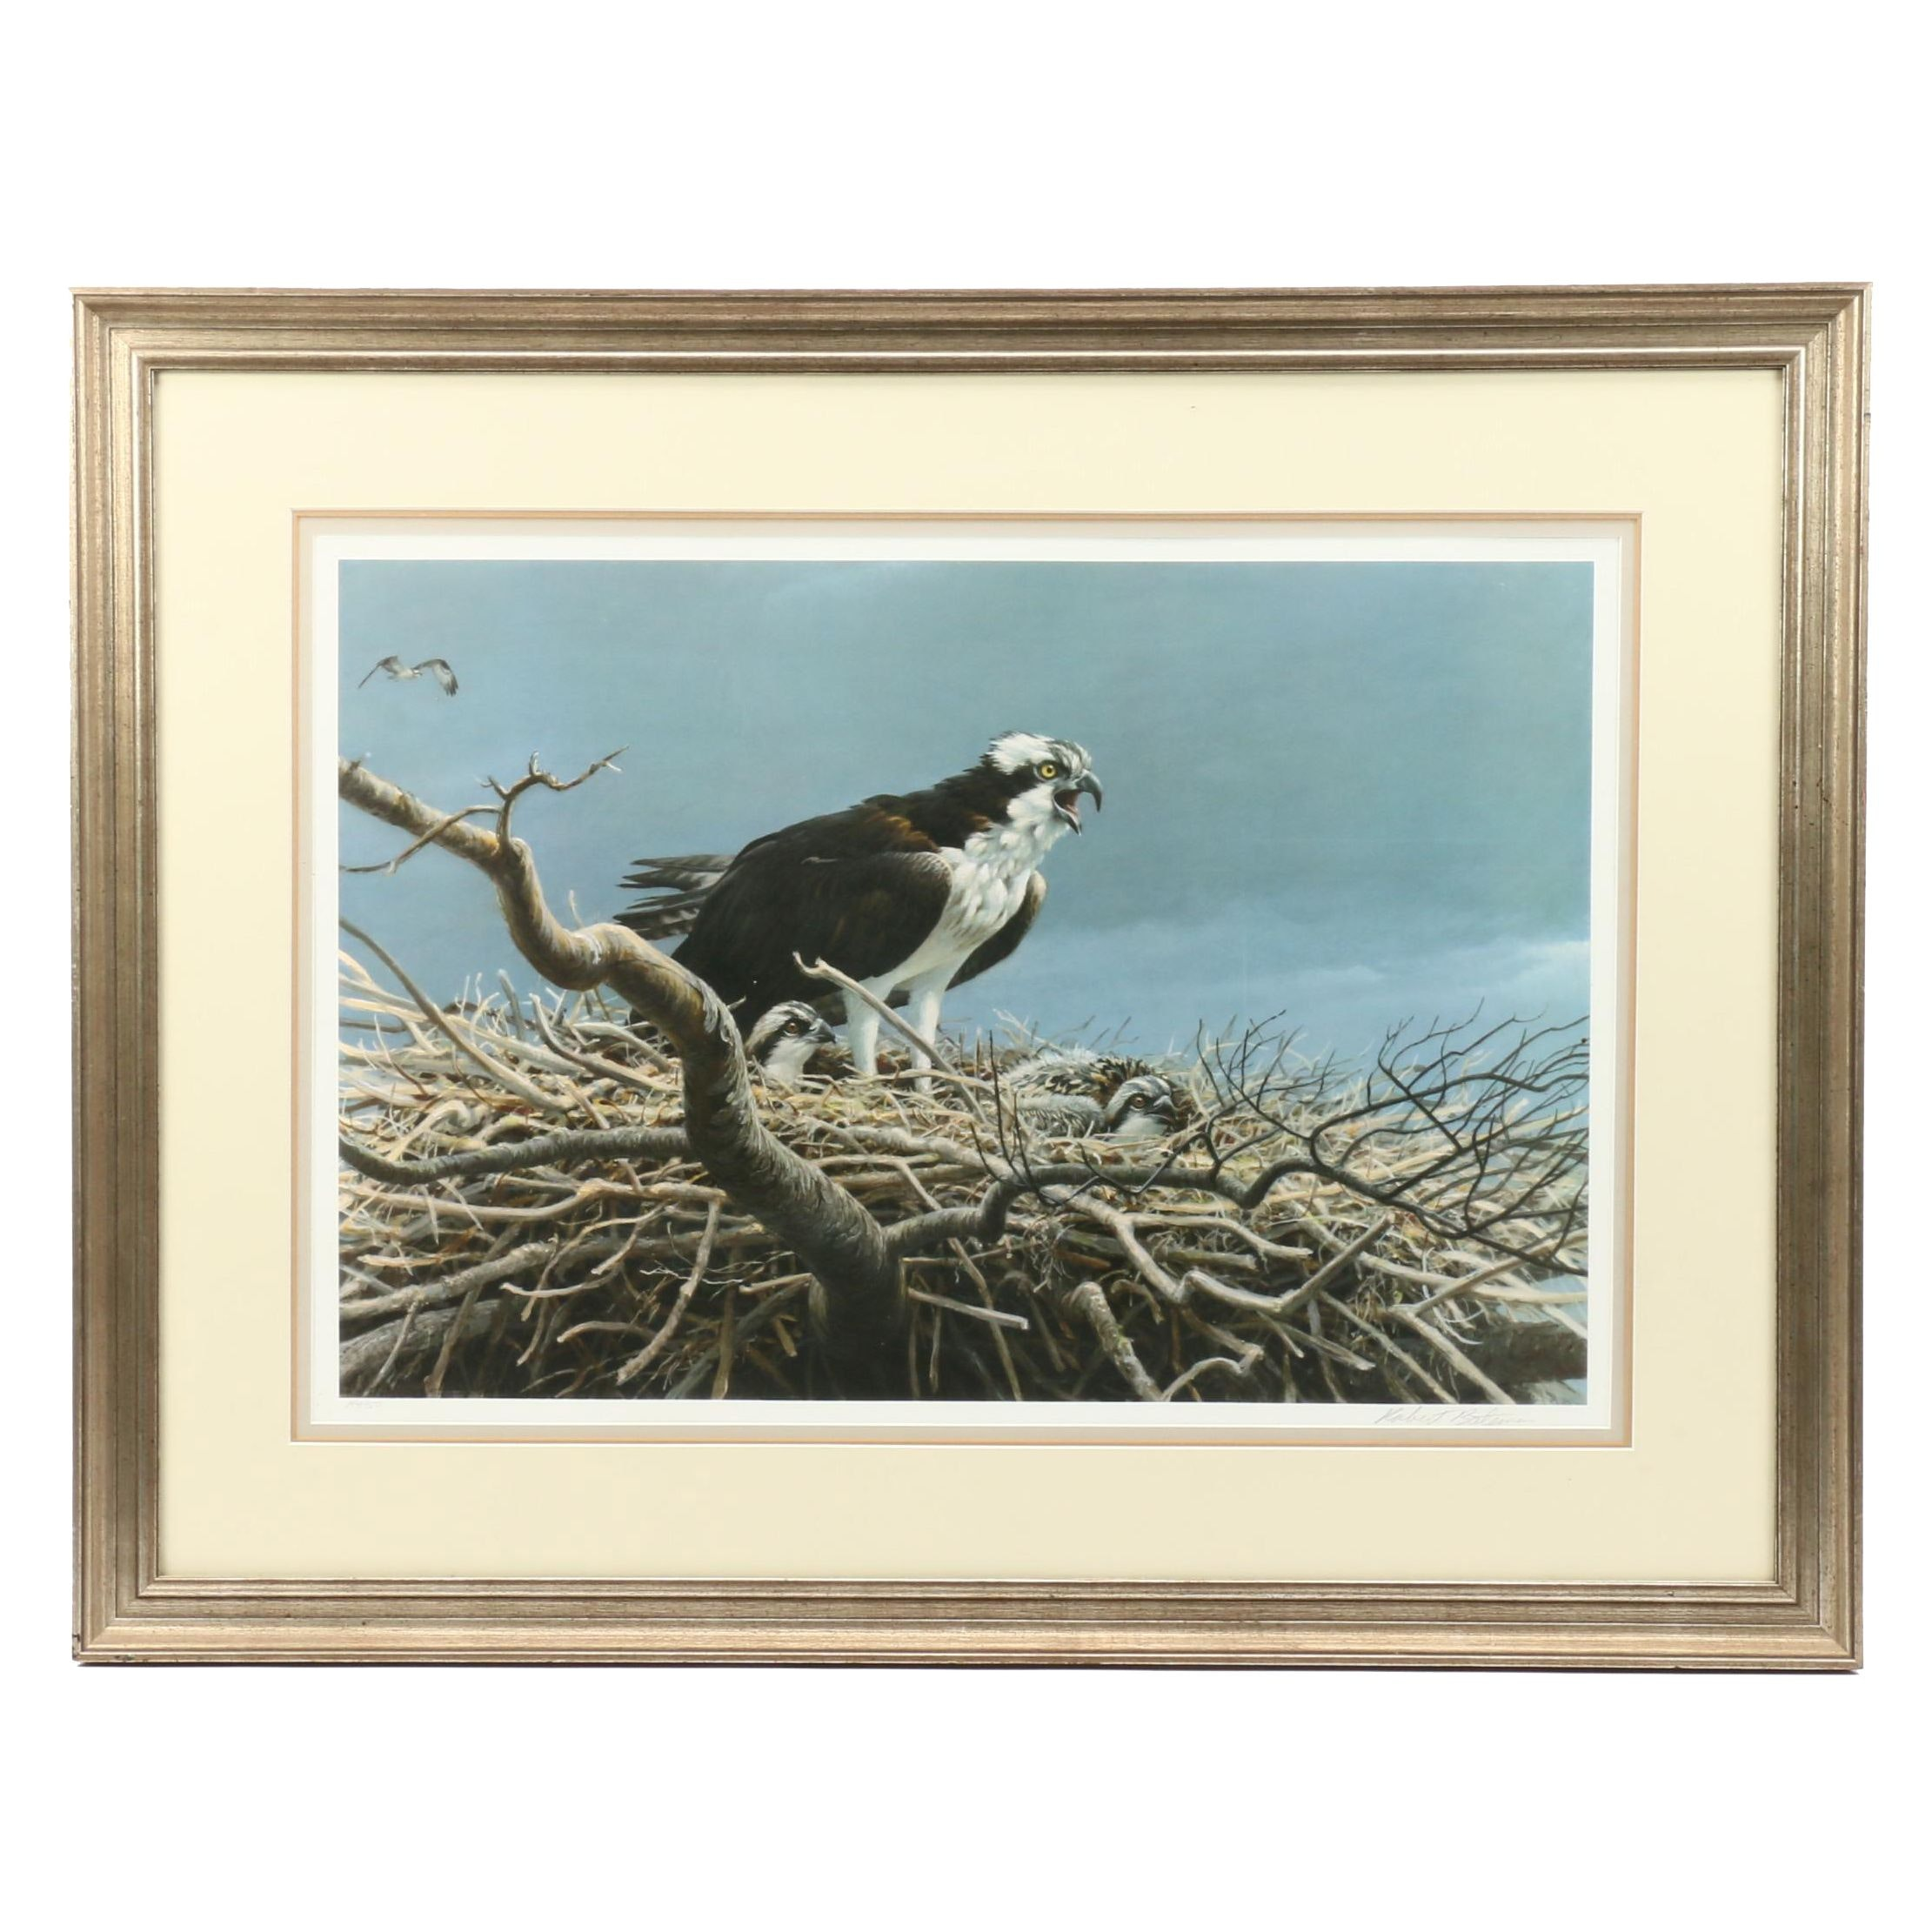 Robert Bateman Offset Lithograph of Eagle with Eaglets in Nest